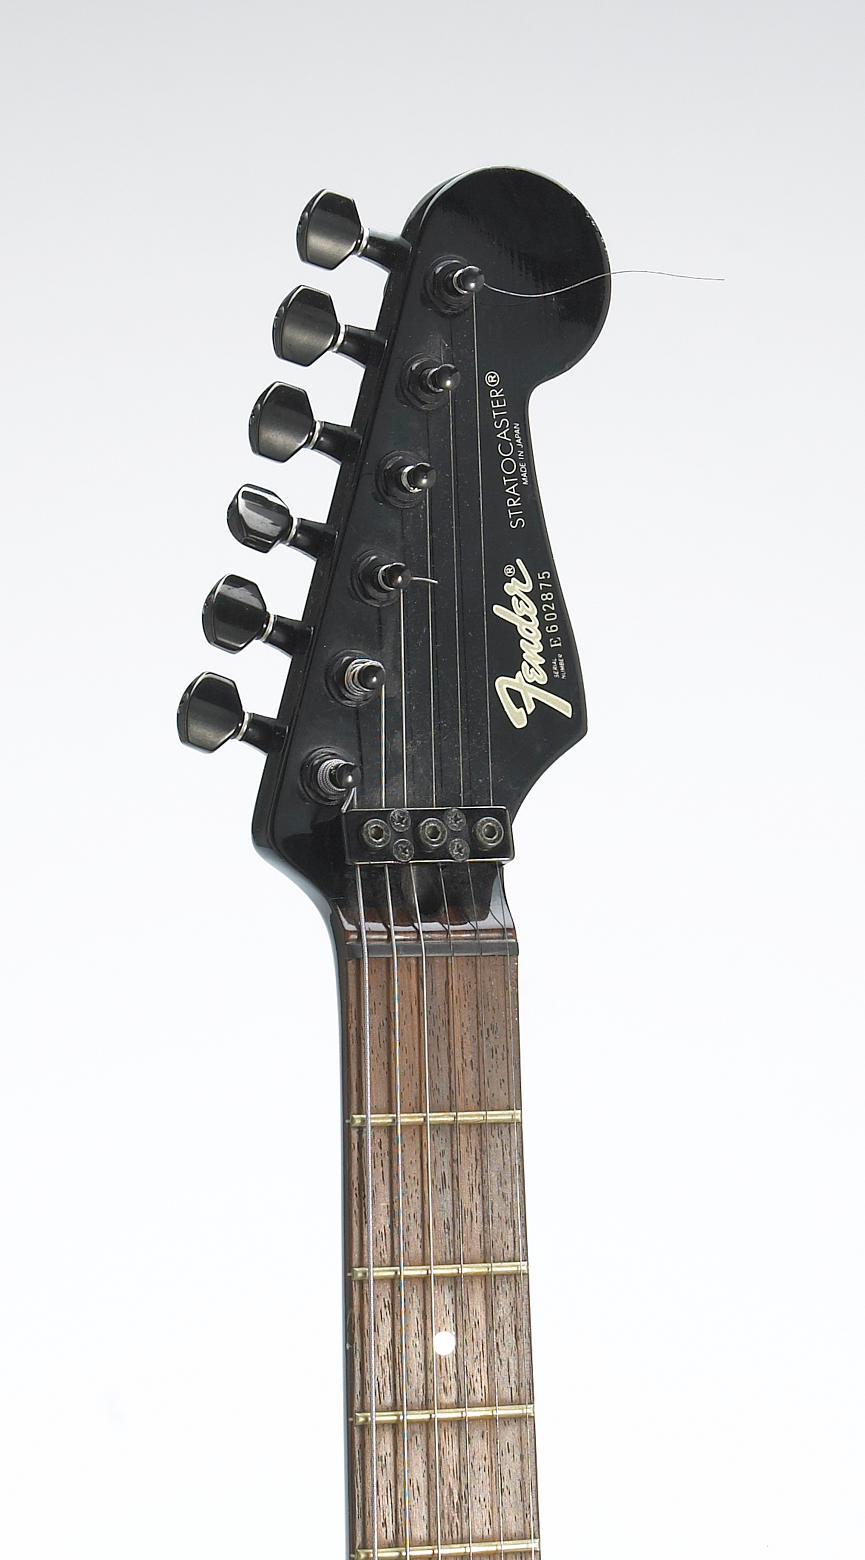 A Jerry Garcia Fender Stratocaster electric guitar, 1980s